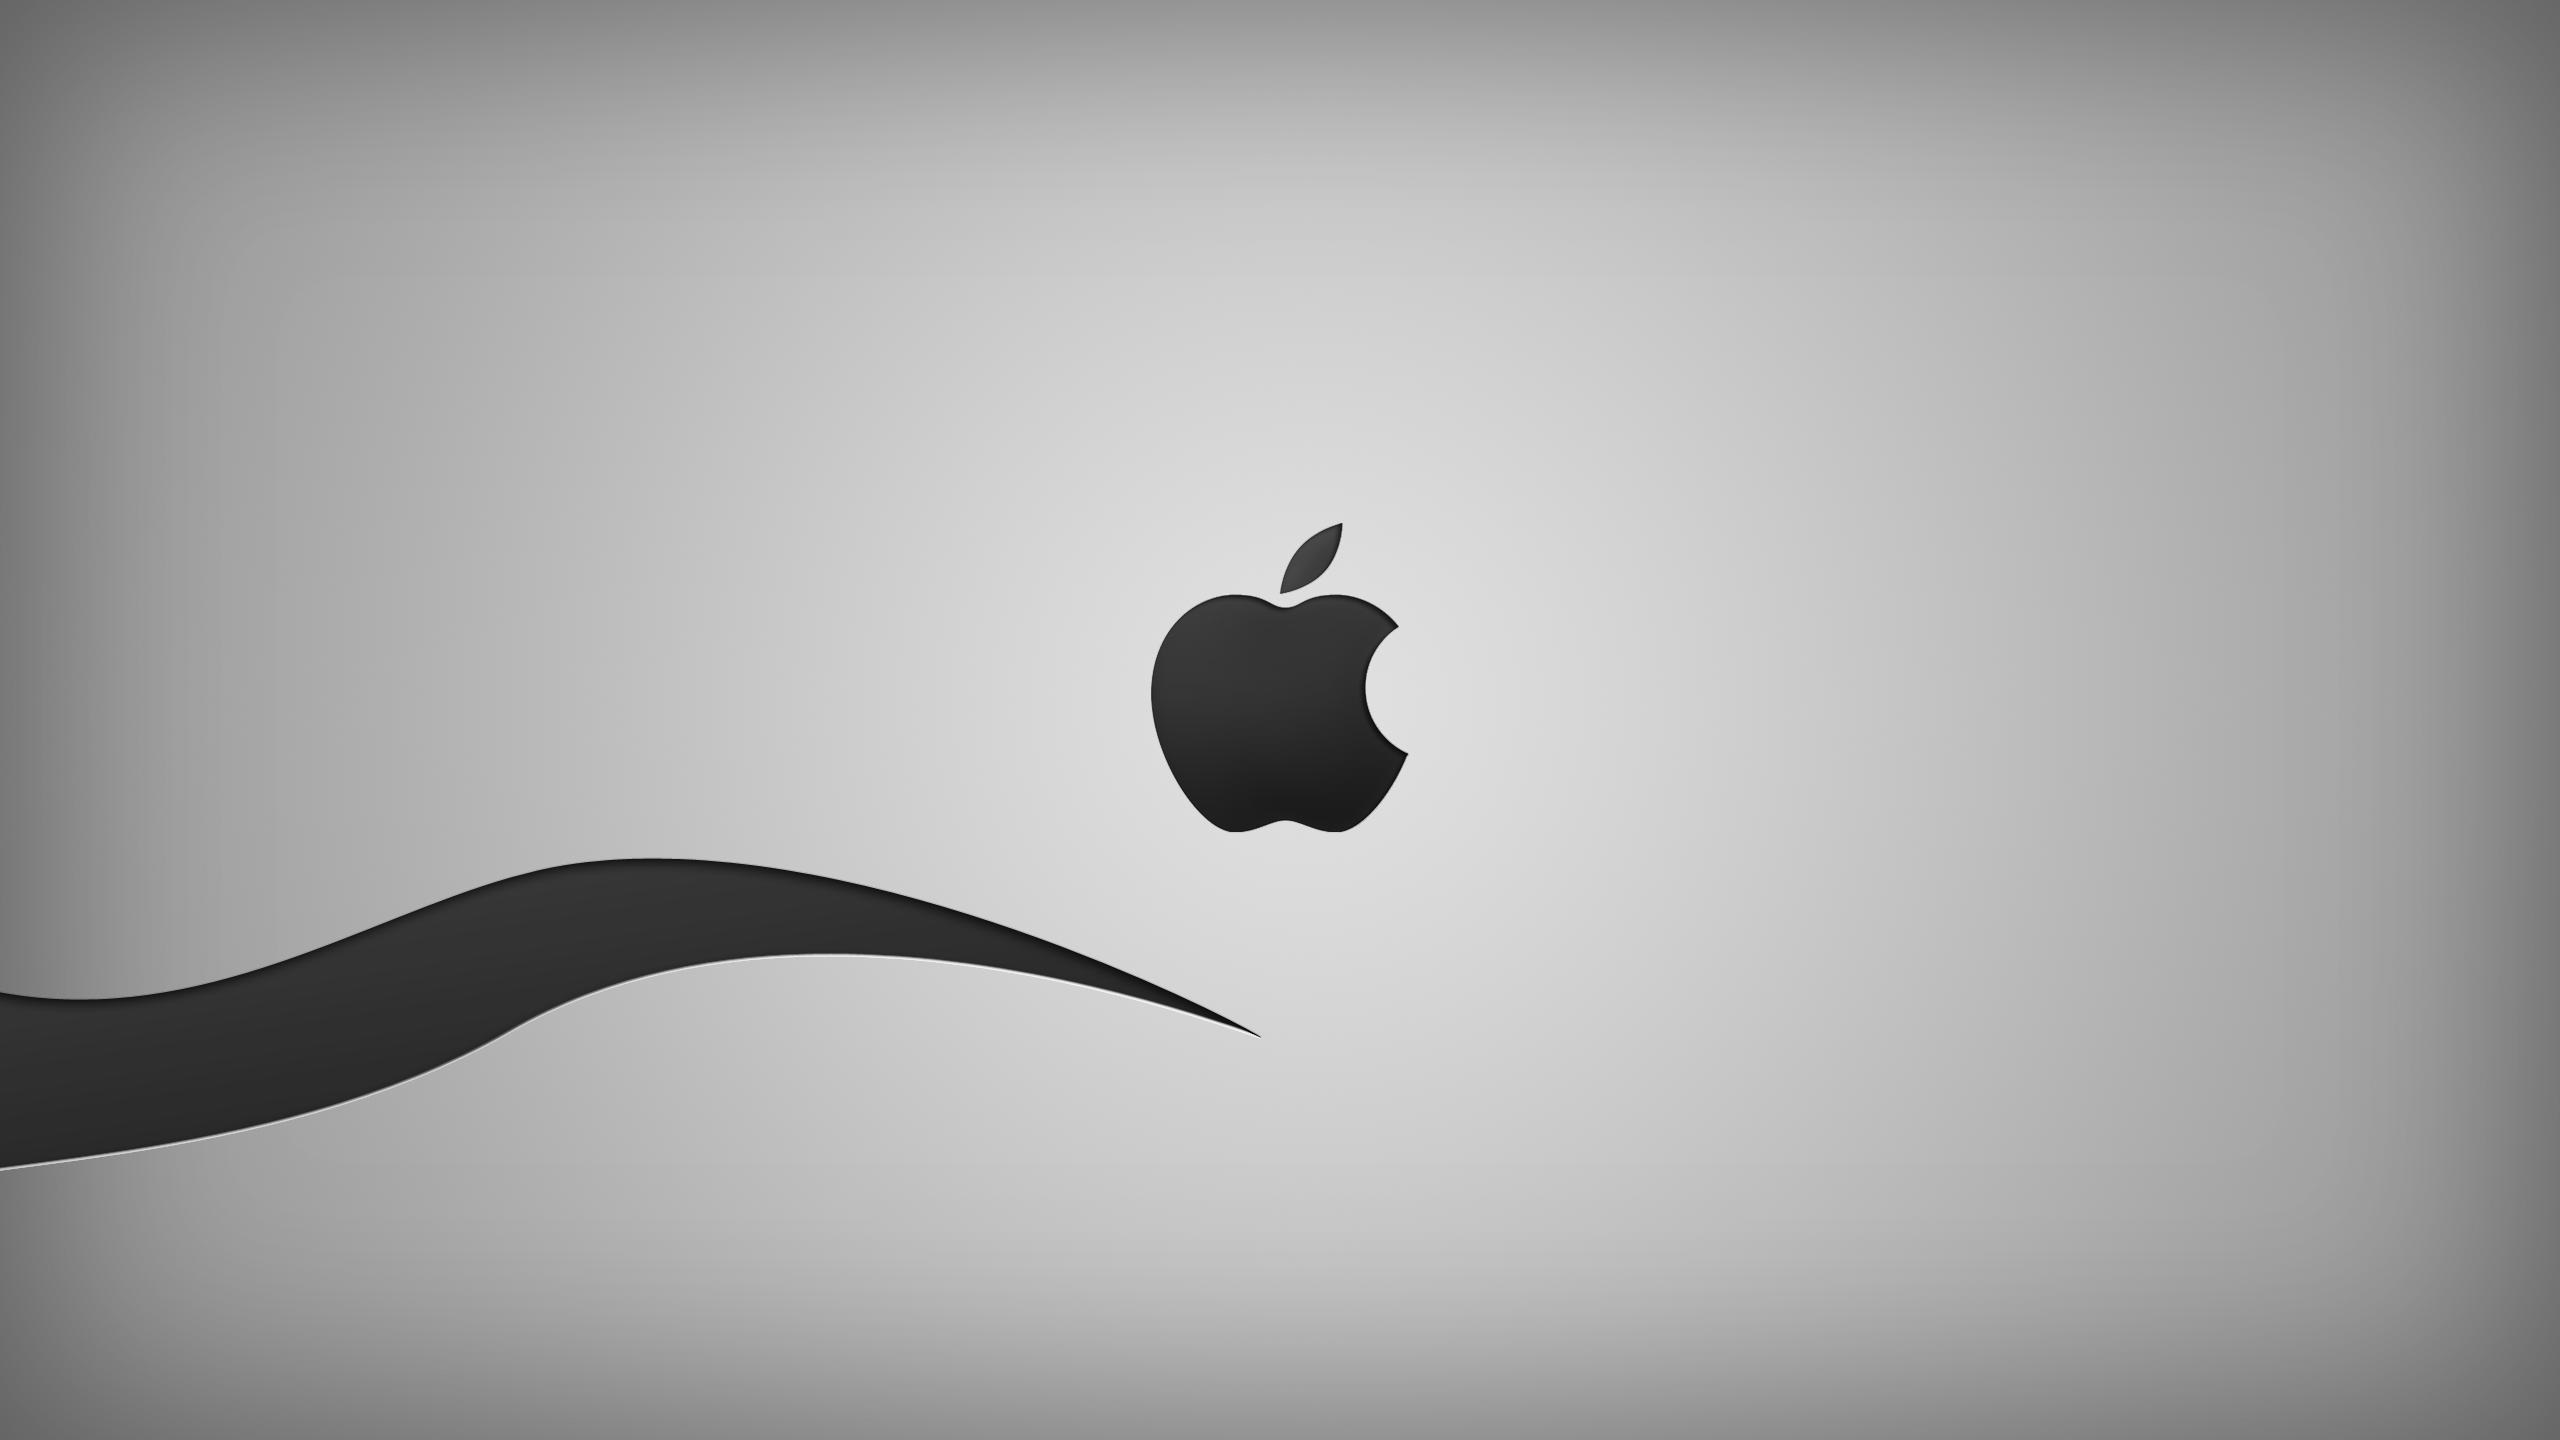 Black And White Apple Wallpaper 2560x1440